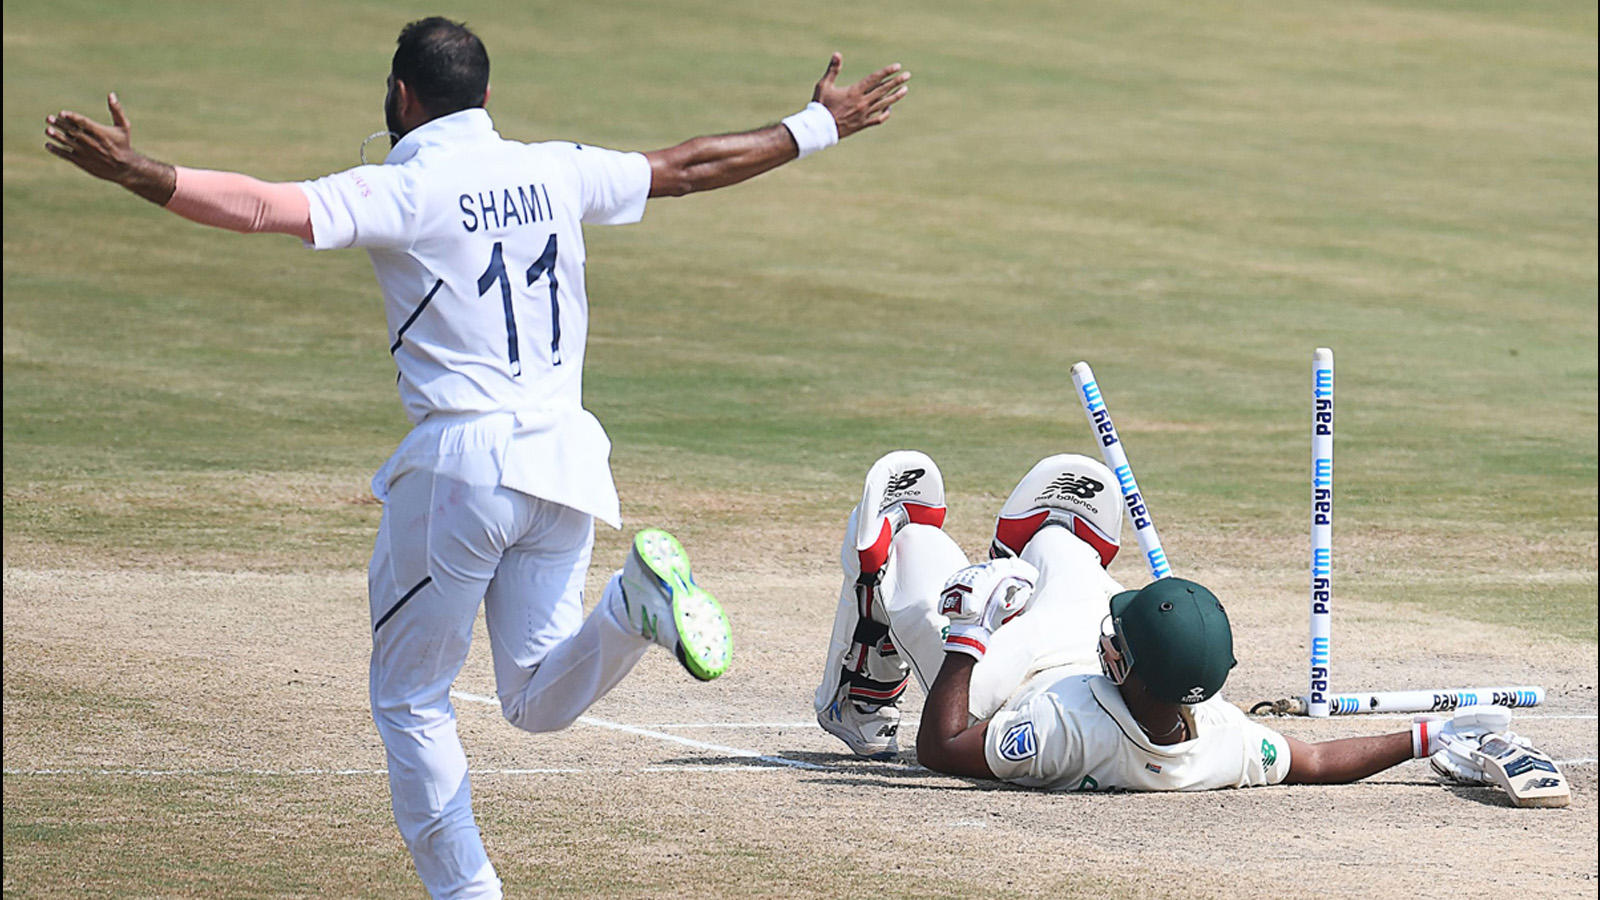 India Vs South Africa 1st Test Full List Of Records In Indias Demolition Job In Vizag